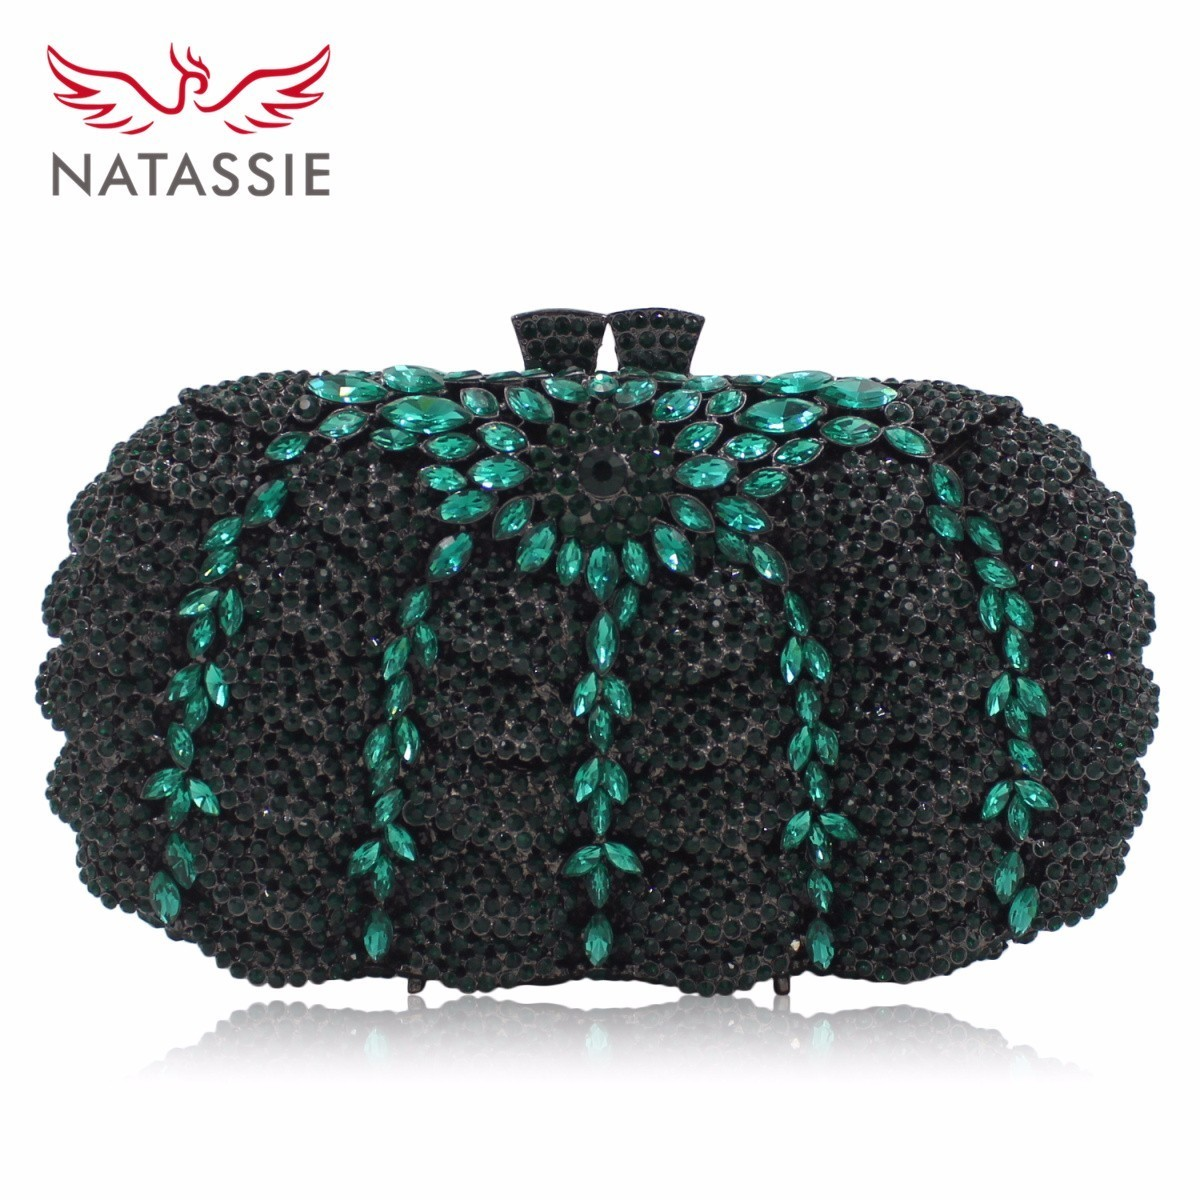 NATASSIE Luxury Crystal Clutches Evening Bags Black Women Wedding Purse Party Bag With Chain luxury designer gold clutches flap women evening bags long chain tassel shoulder bag wedding party rhinestone clutch purse l897